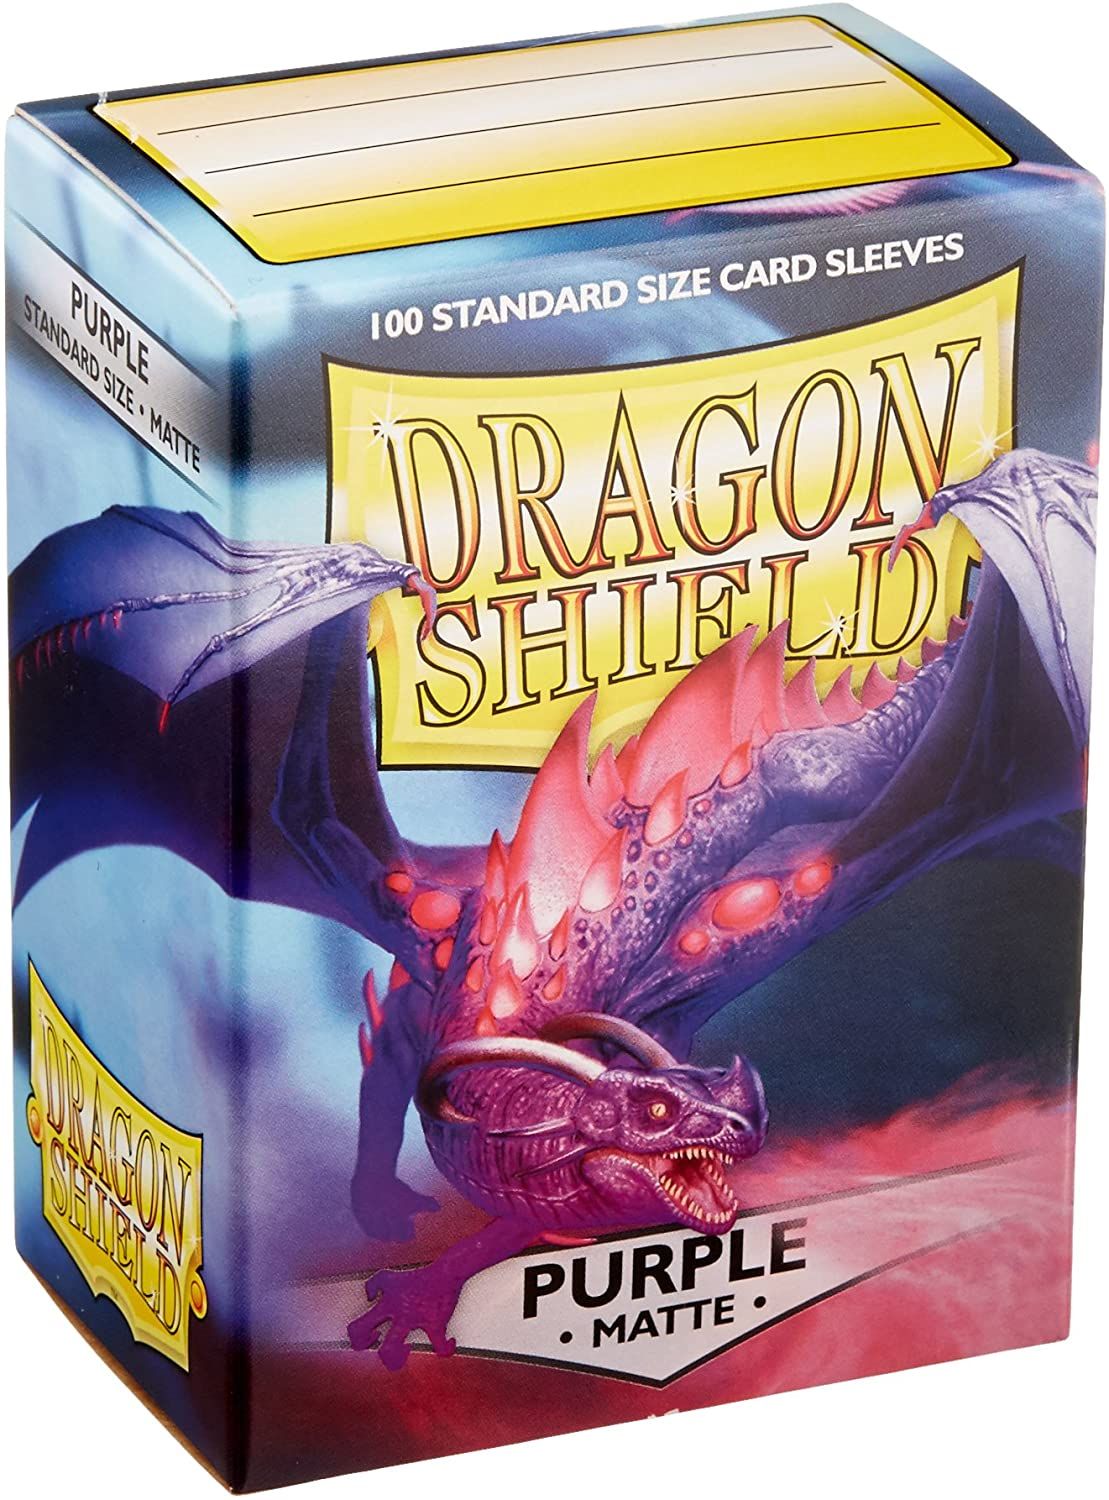 Dragonshield Sleeves: Purple matte